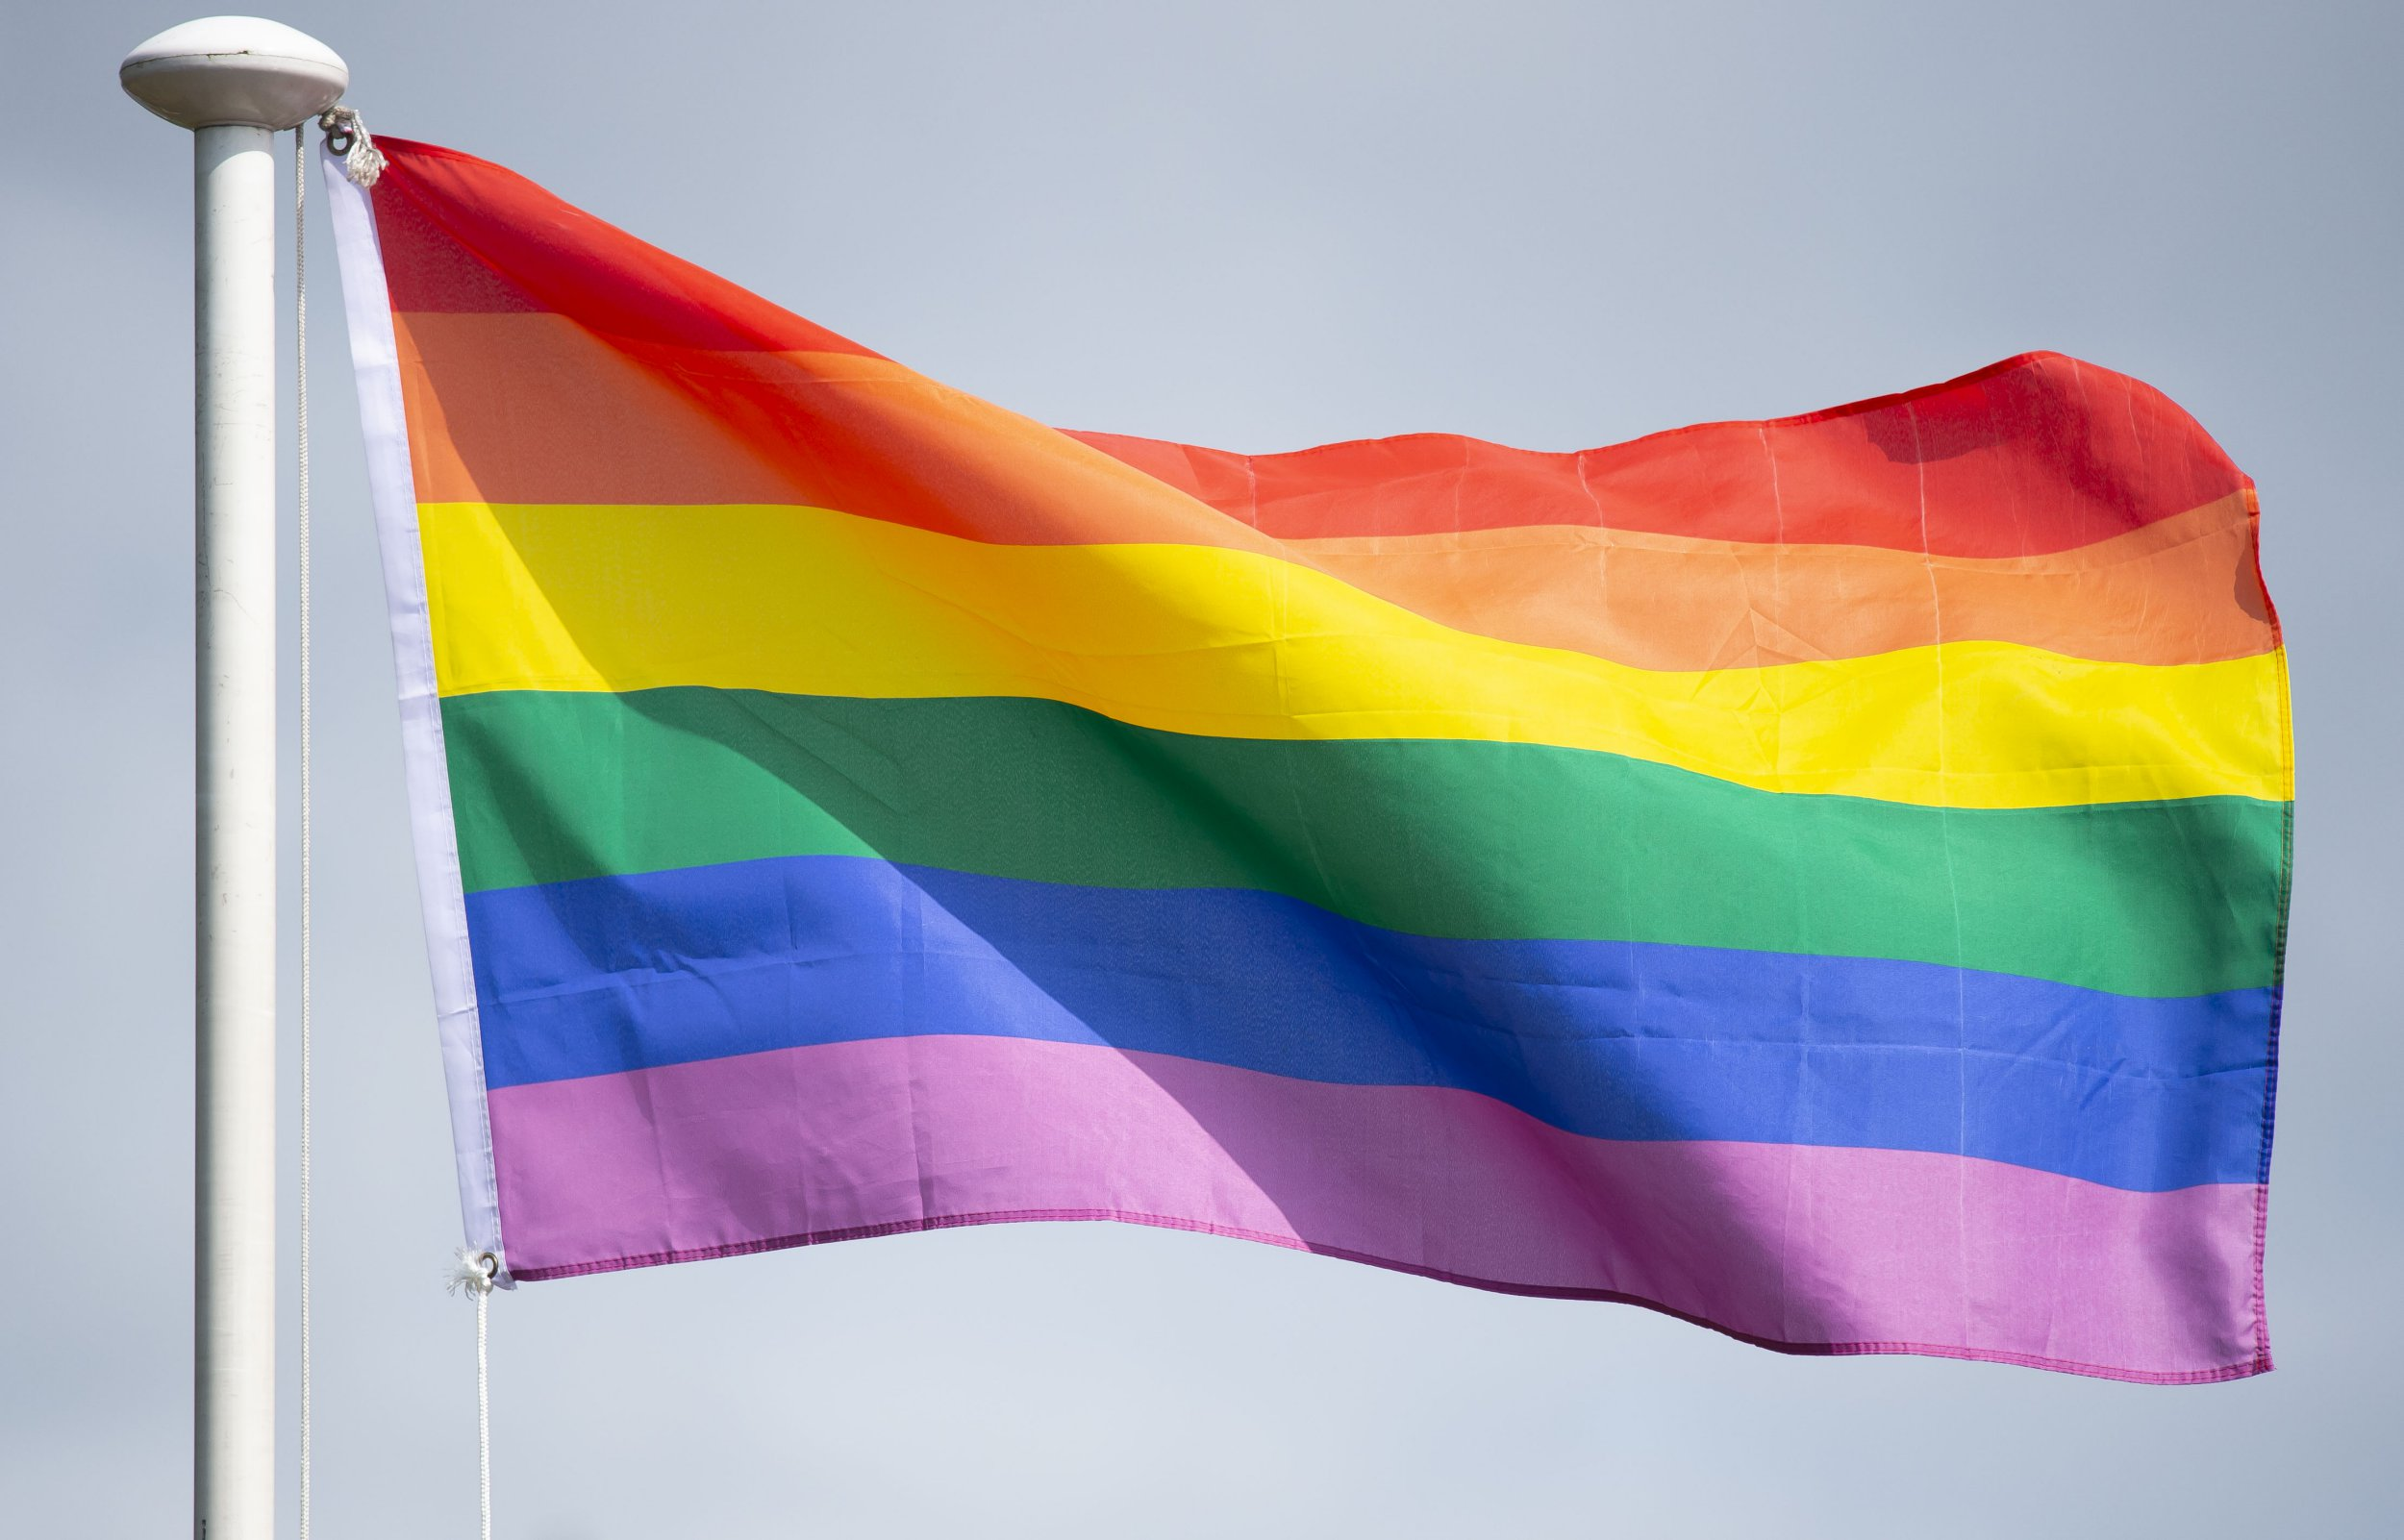 CARDIFF, WALES - AUGUST 25: An LGBT rainbow flag seen during the Pride Cymru parade on August 25, 2018 in Cardiff, Wales. Pride Cymru aims to eliminate discrimination on the grounds of sexual orientation and gender and promote LGBT equality and diversity within Wales. (Photo by Matthew Horwood/Getty Images)